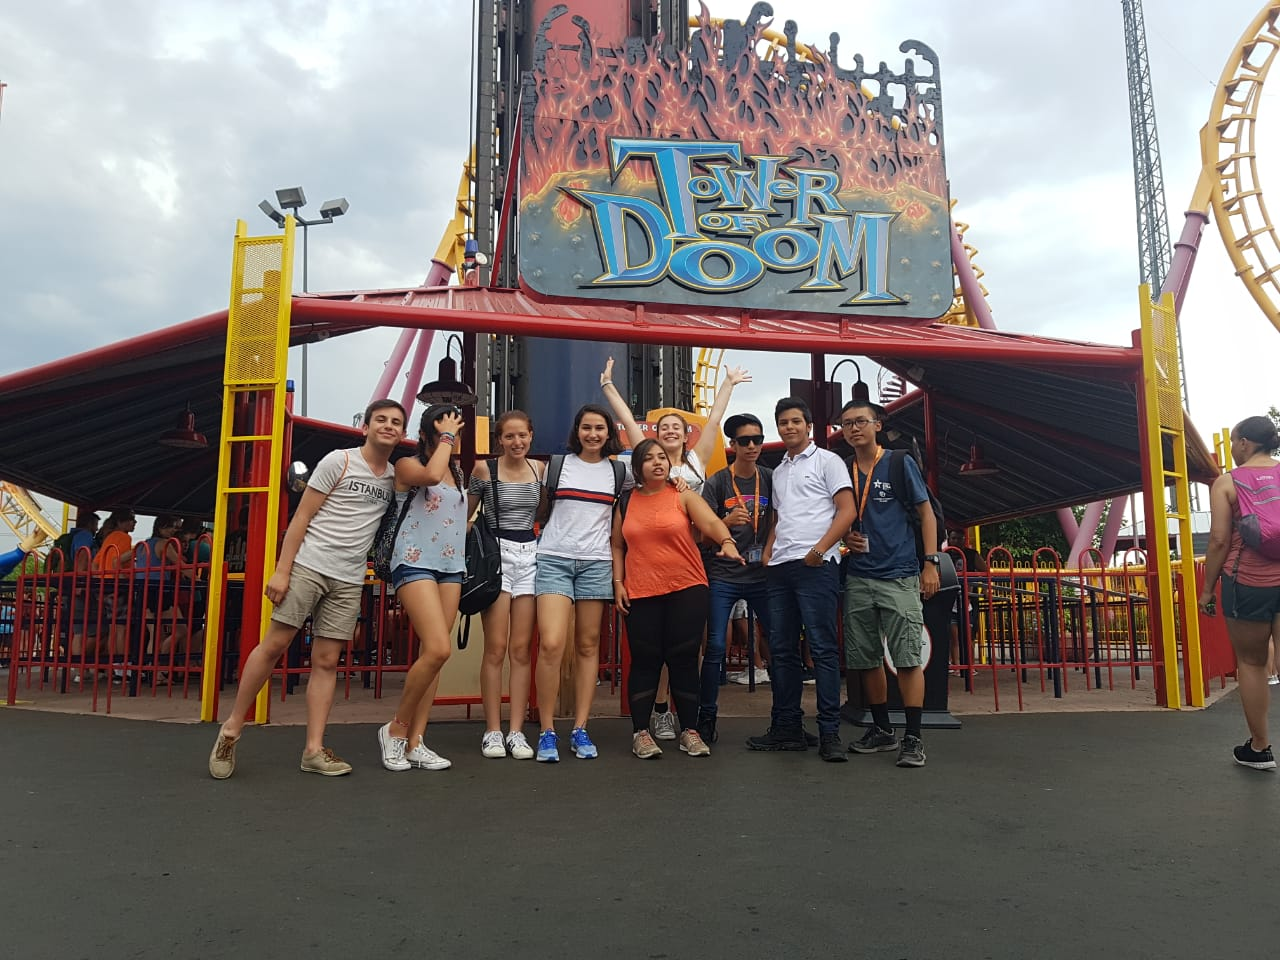 Group picture at Tower of Doom